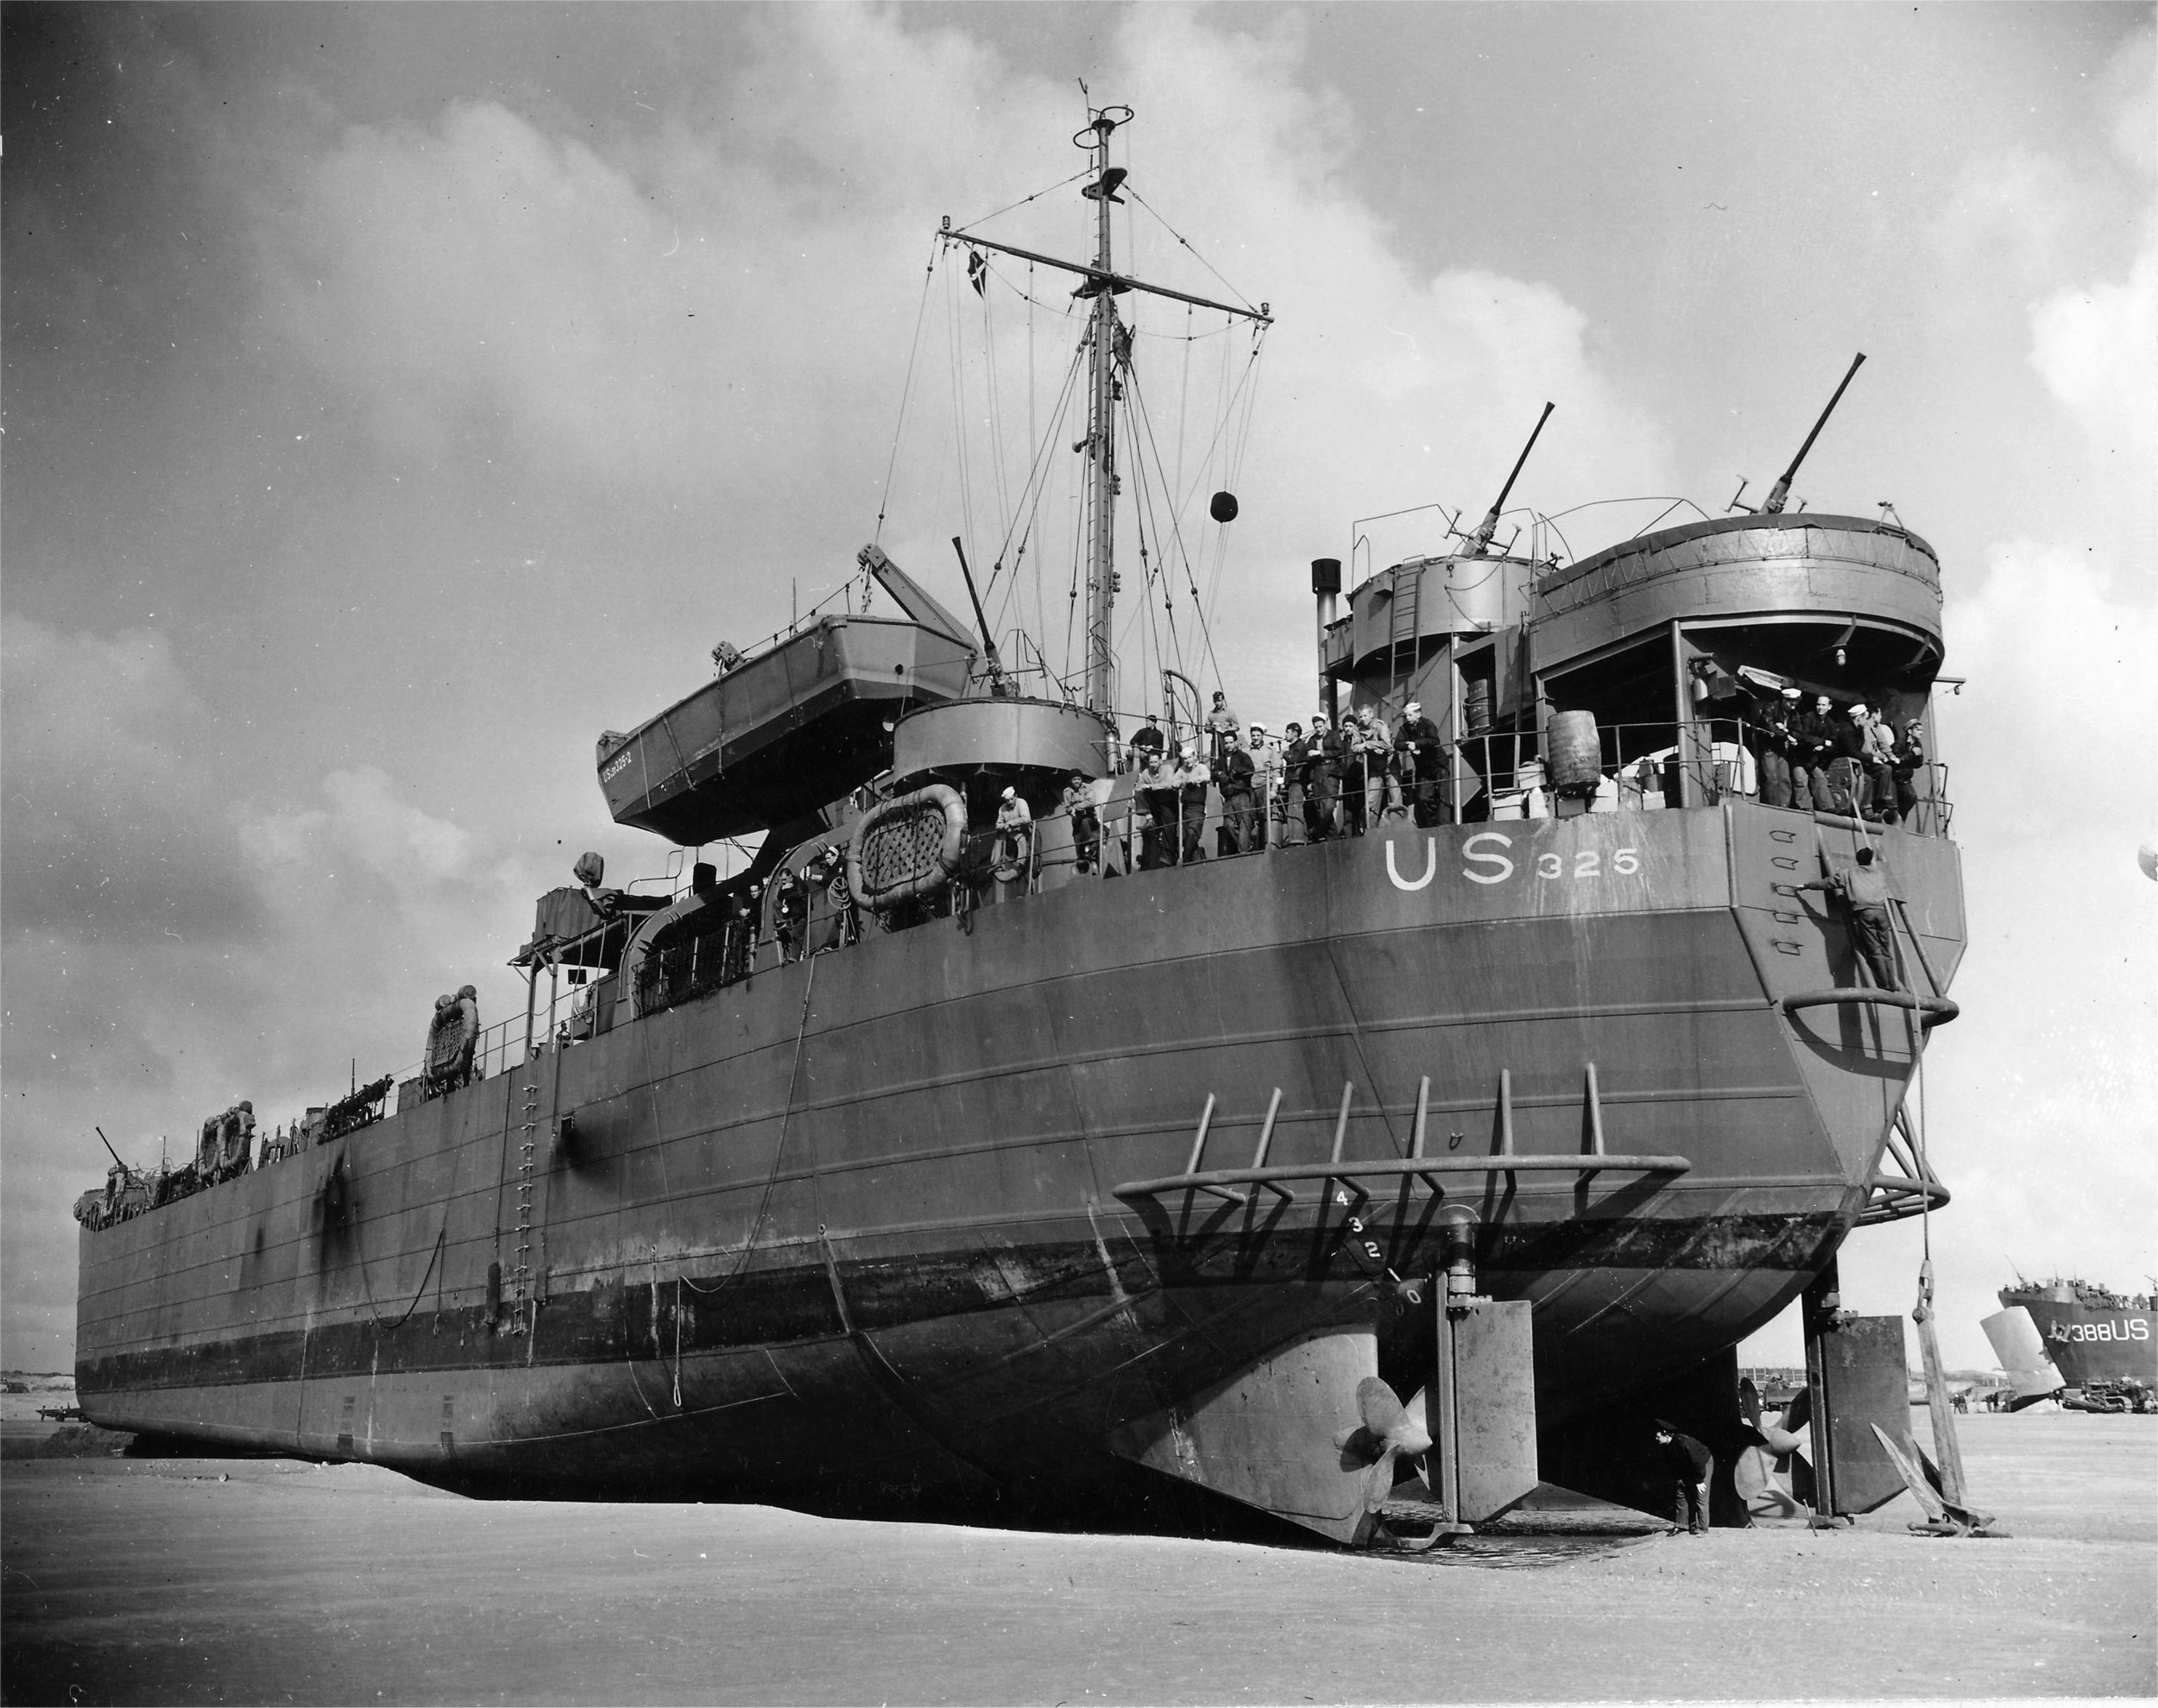 USS LST-325 beached off the coast of Normandy at low tide on June 12, 1944. Photo source: Navsource.org.